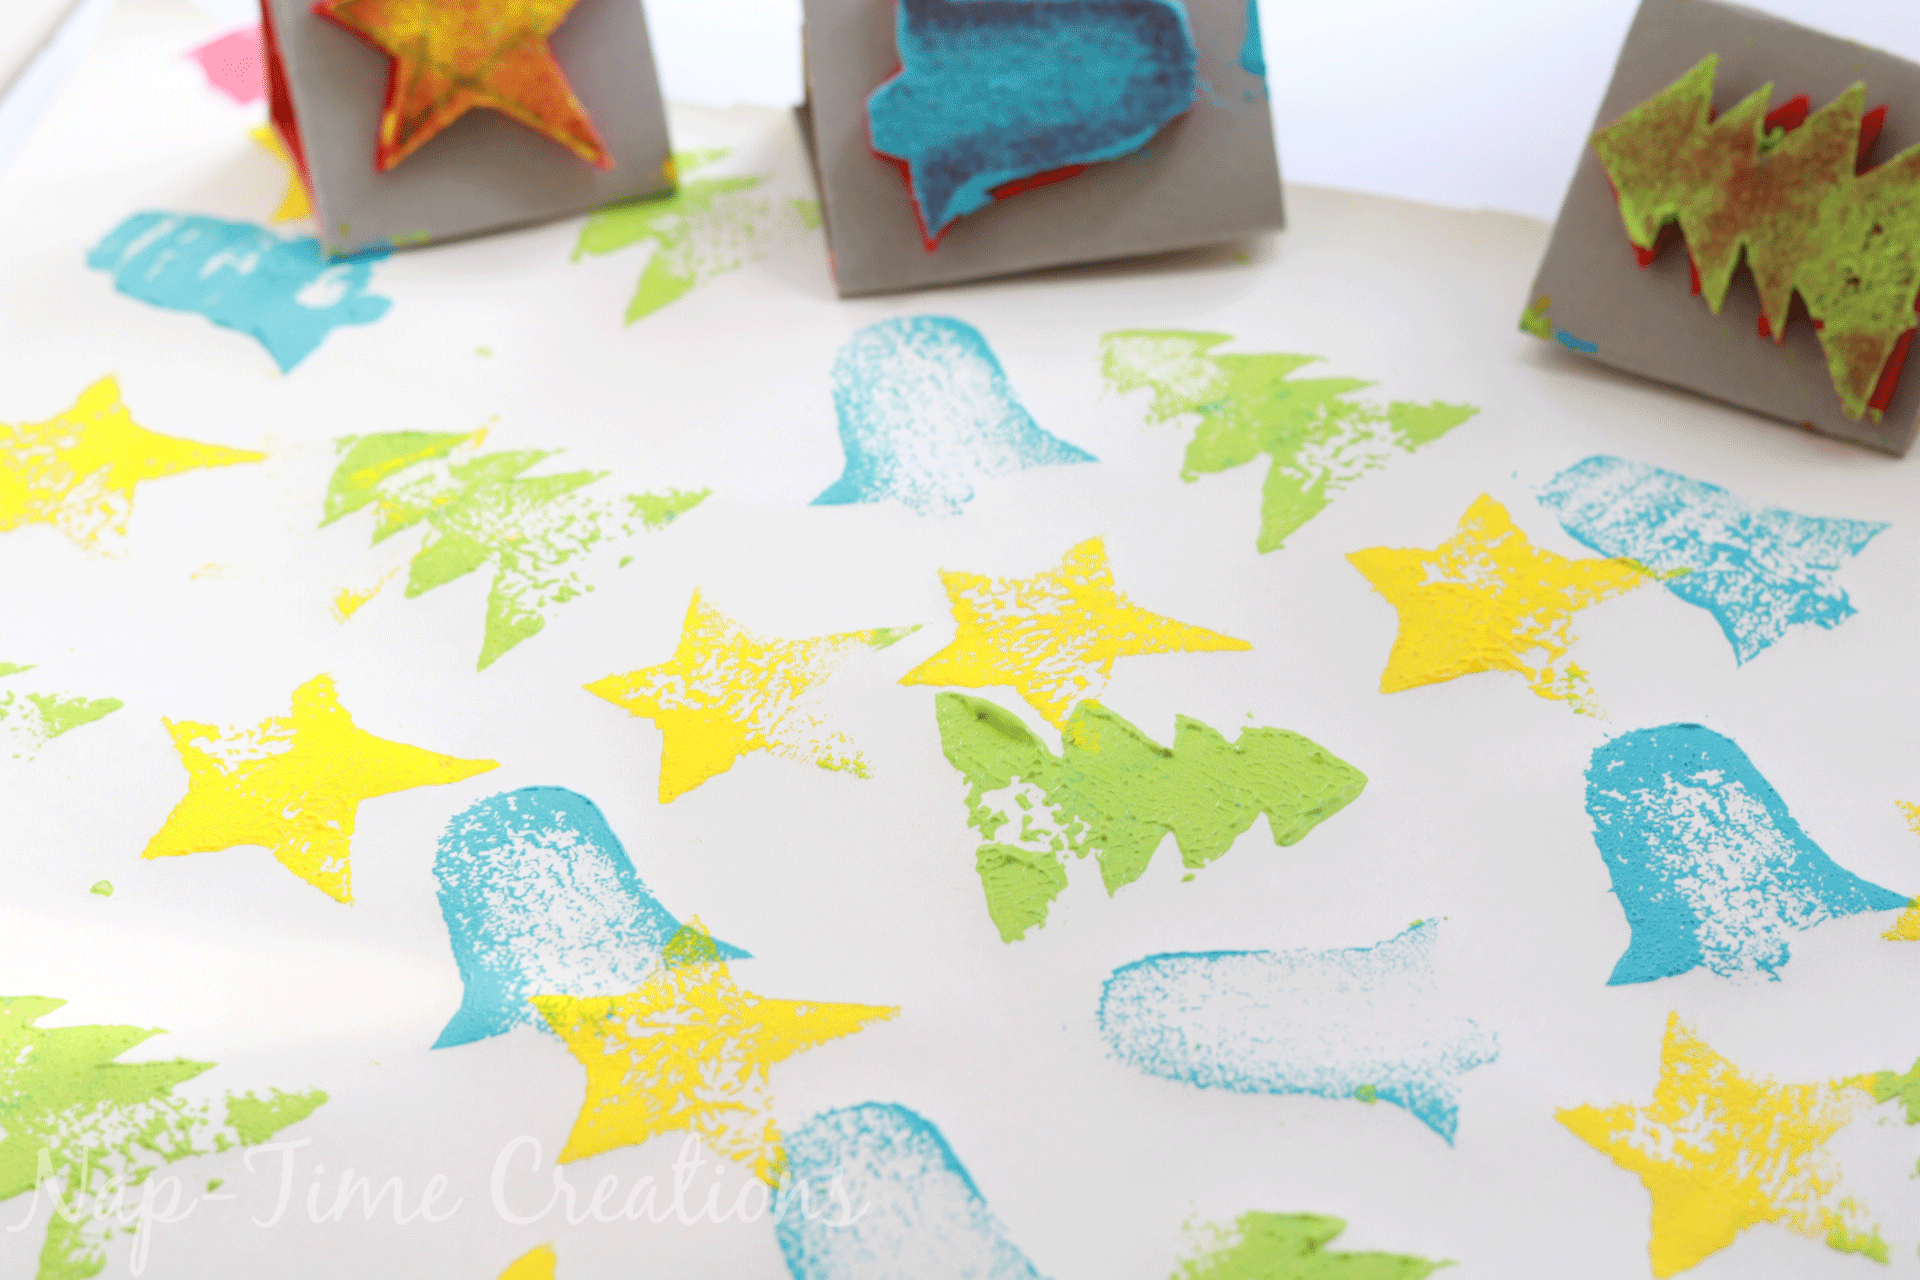 diy-felt-stamps-and-homemade-christmas-wrapping-paper-6